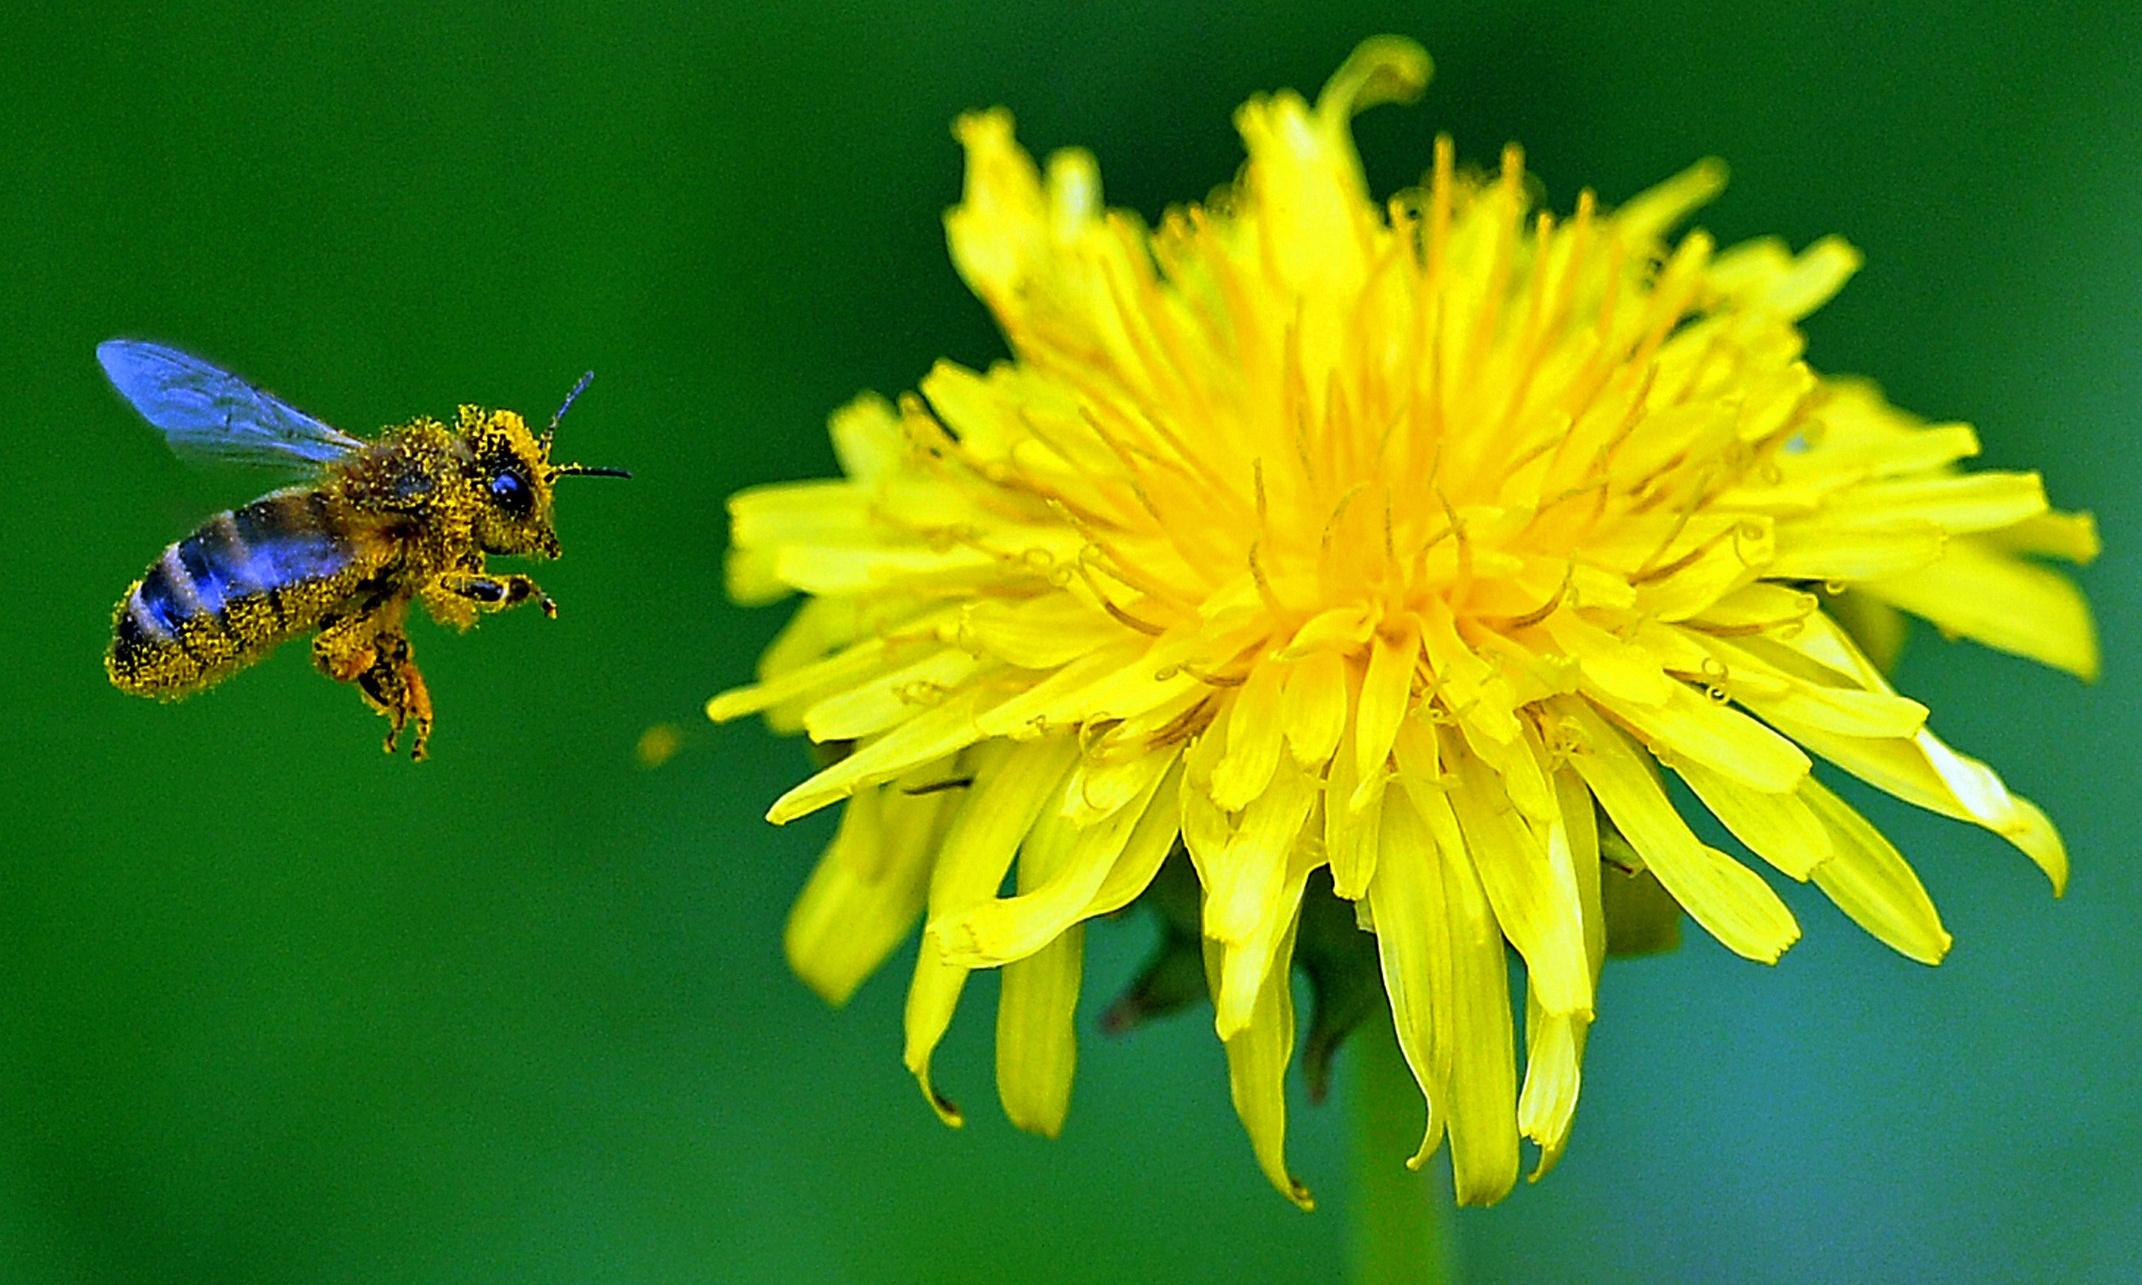 Help bees by not mowing dandelions, gardeners told